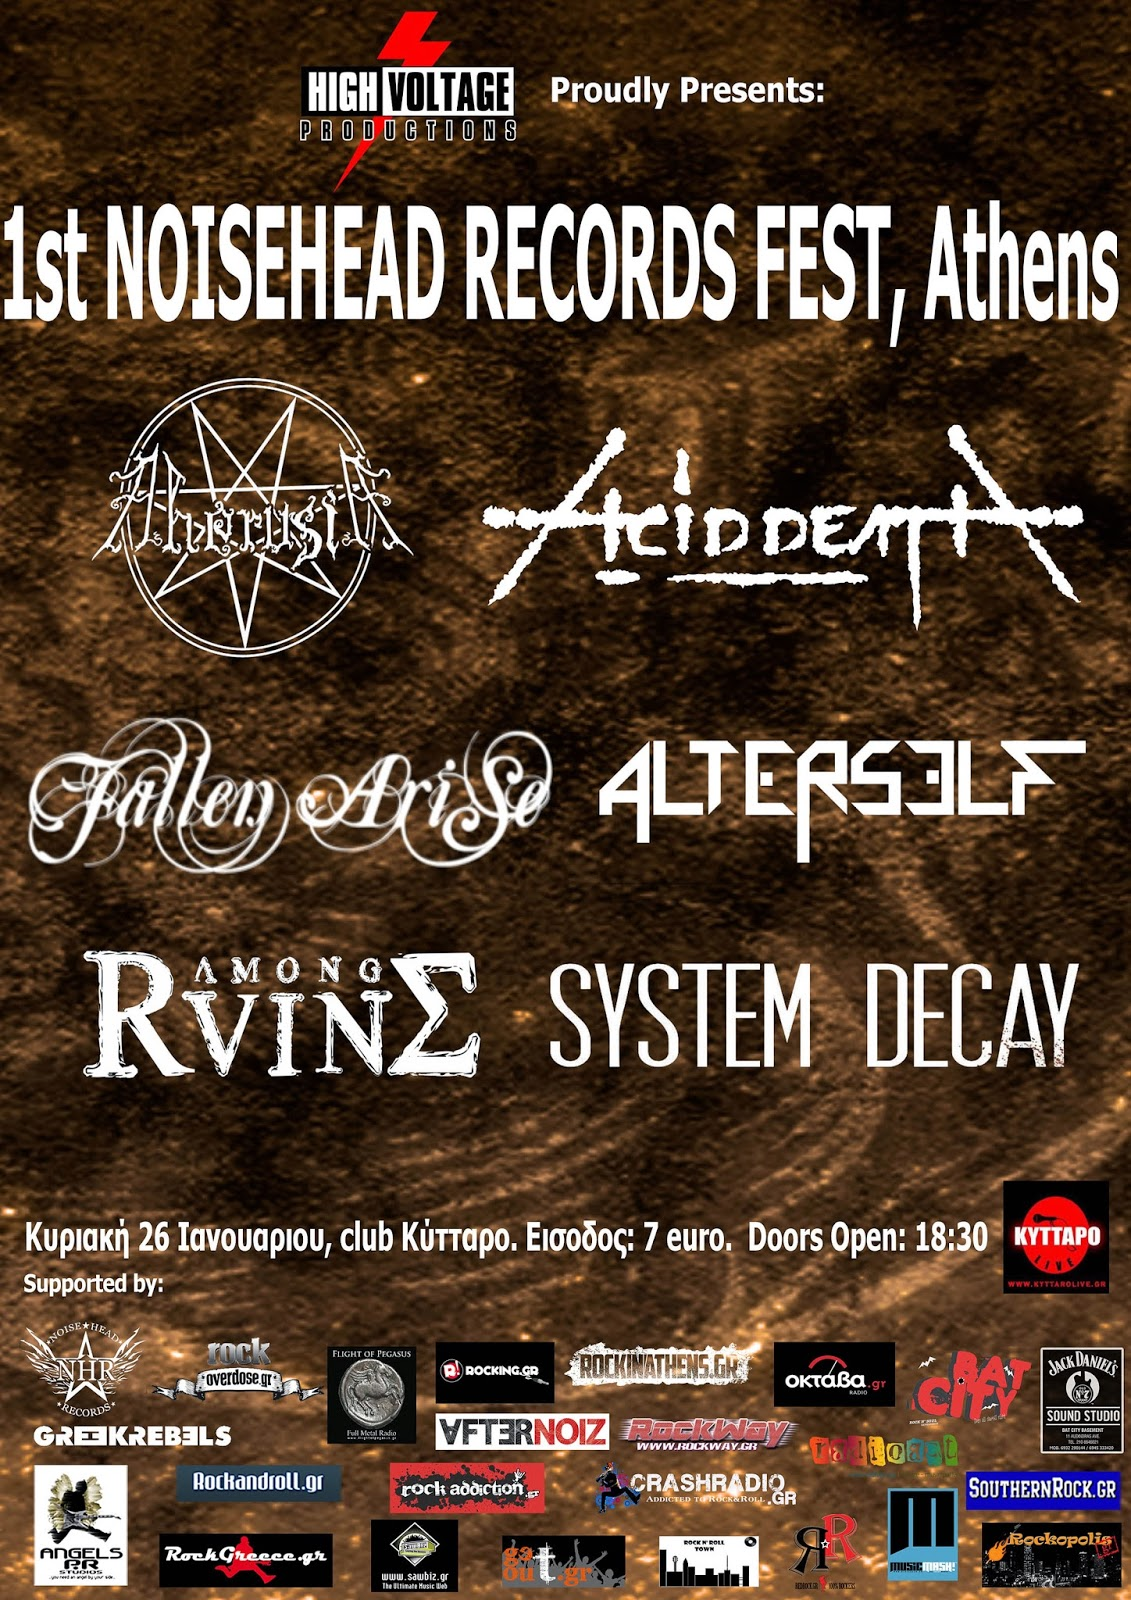 noisehead-records-fest-athens-club-kyttaro